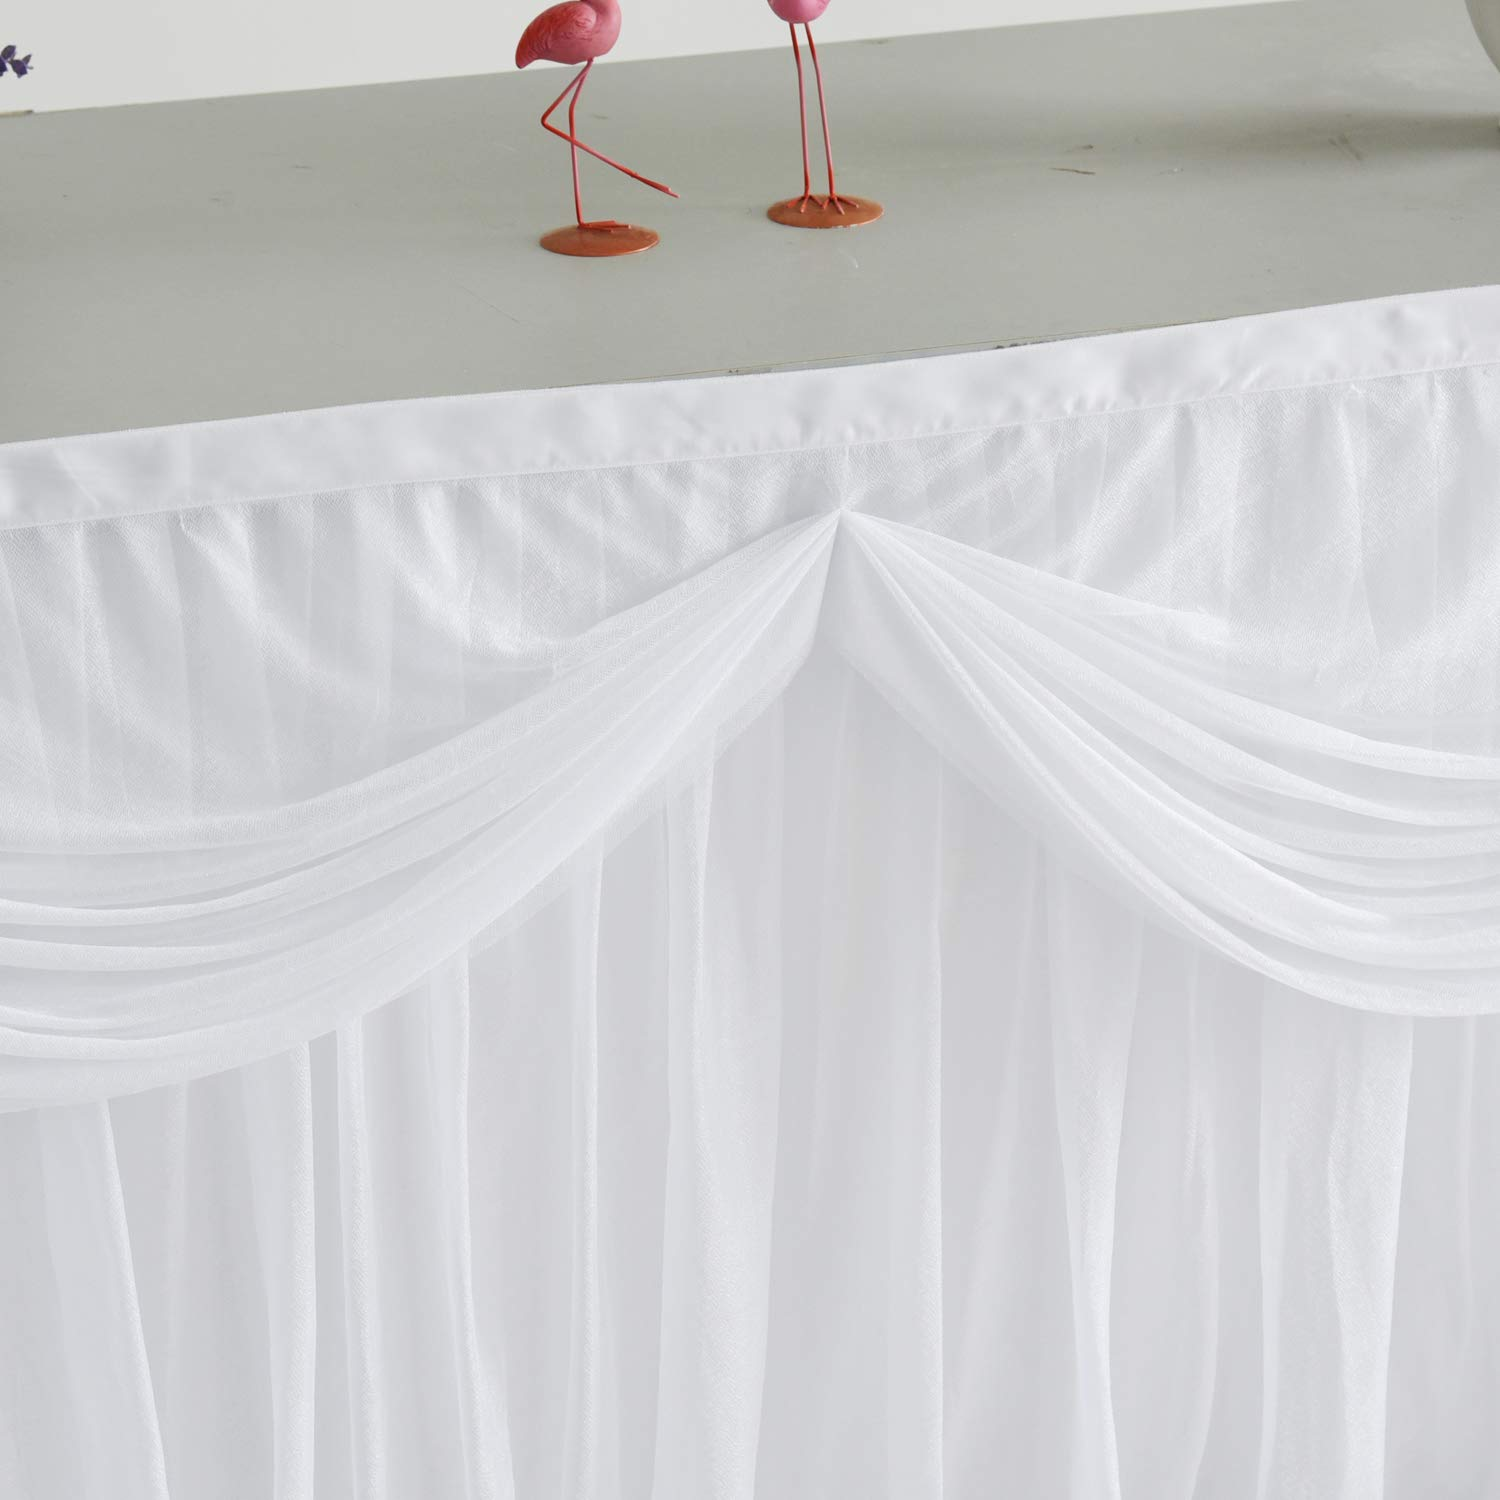 6FT White Tulle Table Skirt With Satin Double Drape Tutu Table Skirting for Rectangle or Round Tables banquet table skirt for Party,Wedding,Baby Shower. by CO-AVE